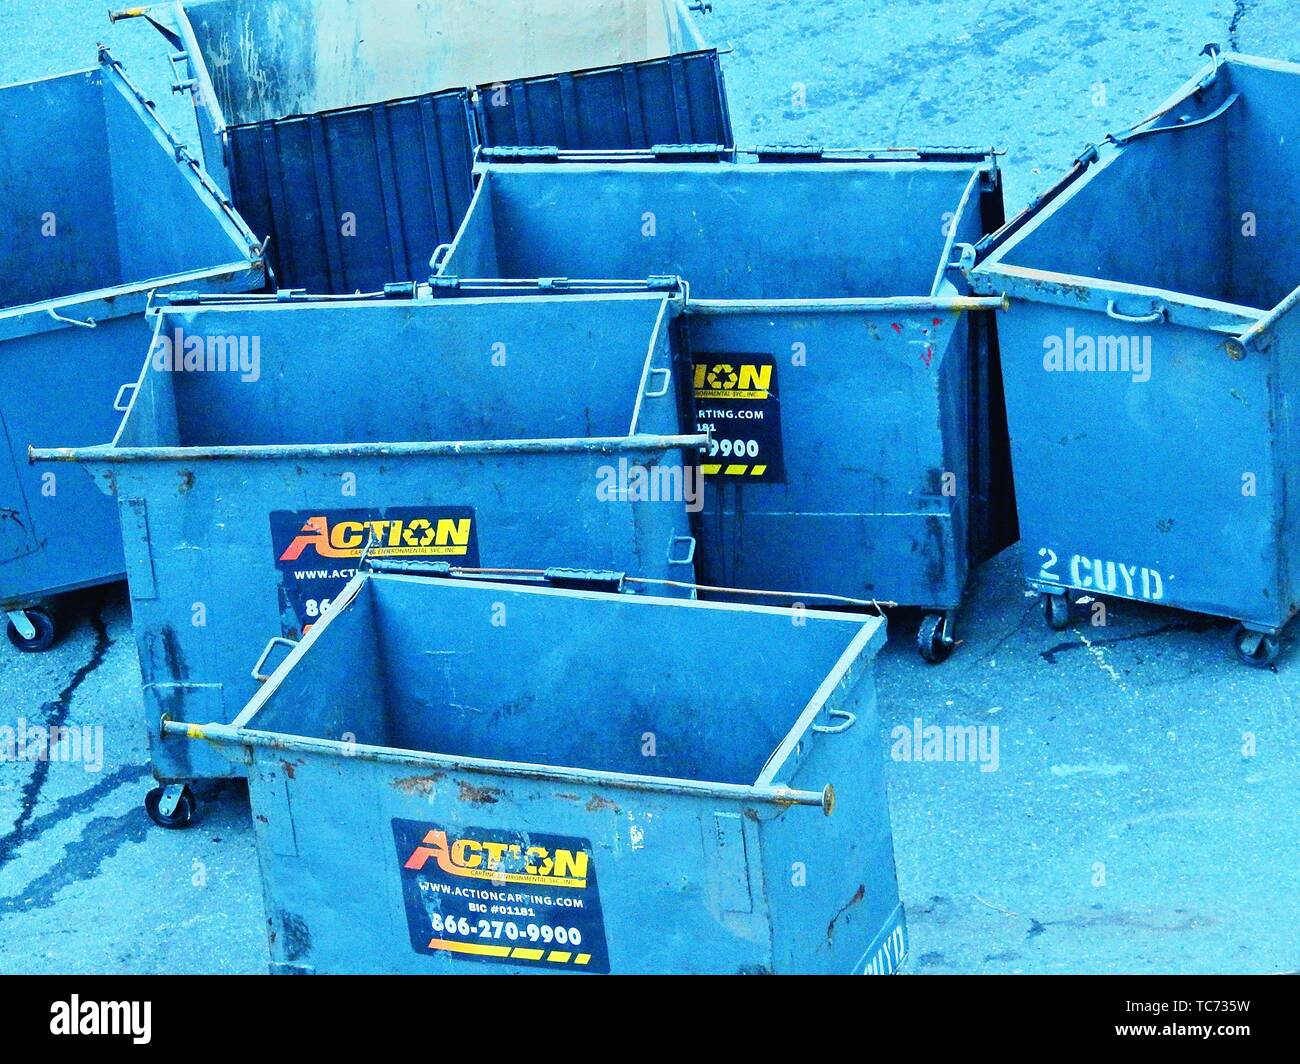 Commercial Waste Containers, Recycling and Environmental Services. Action Carting Environmental Services is the most progressive and innovative - Stock Image